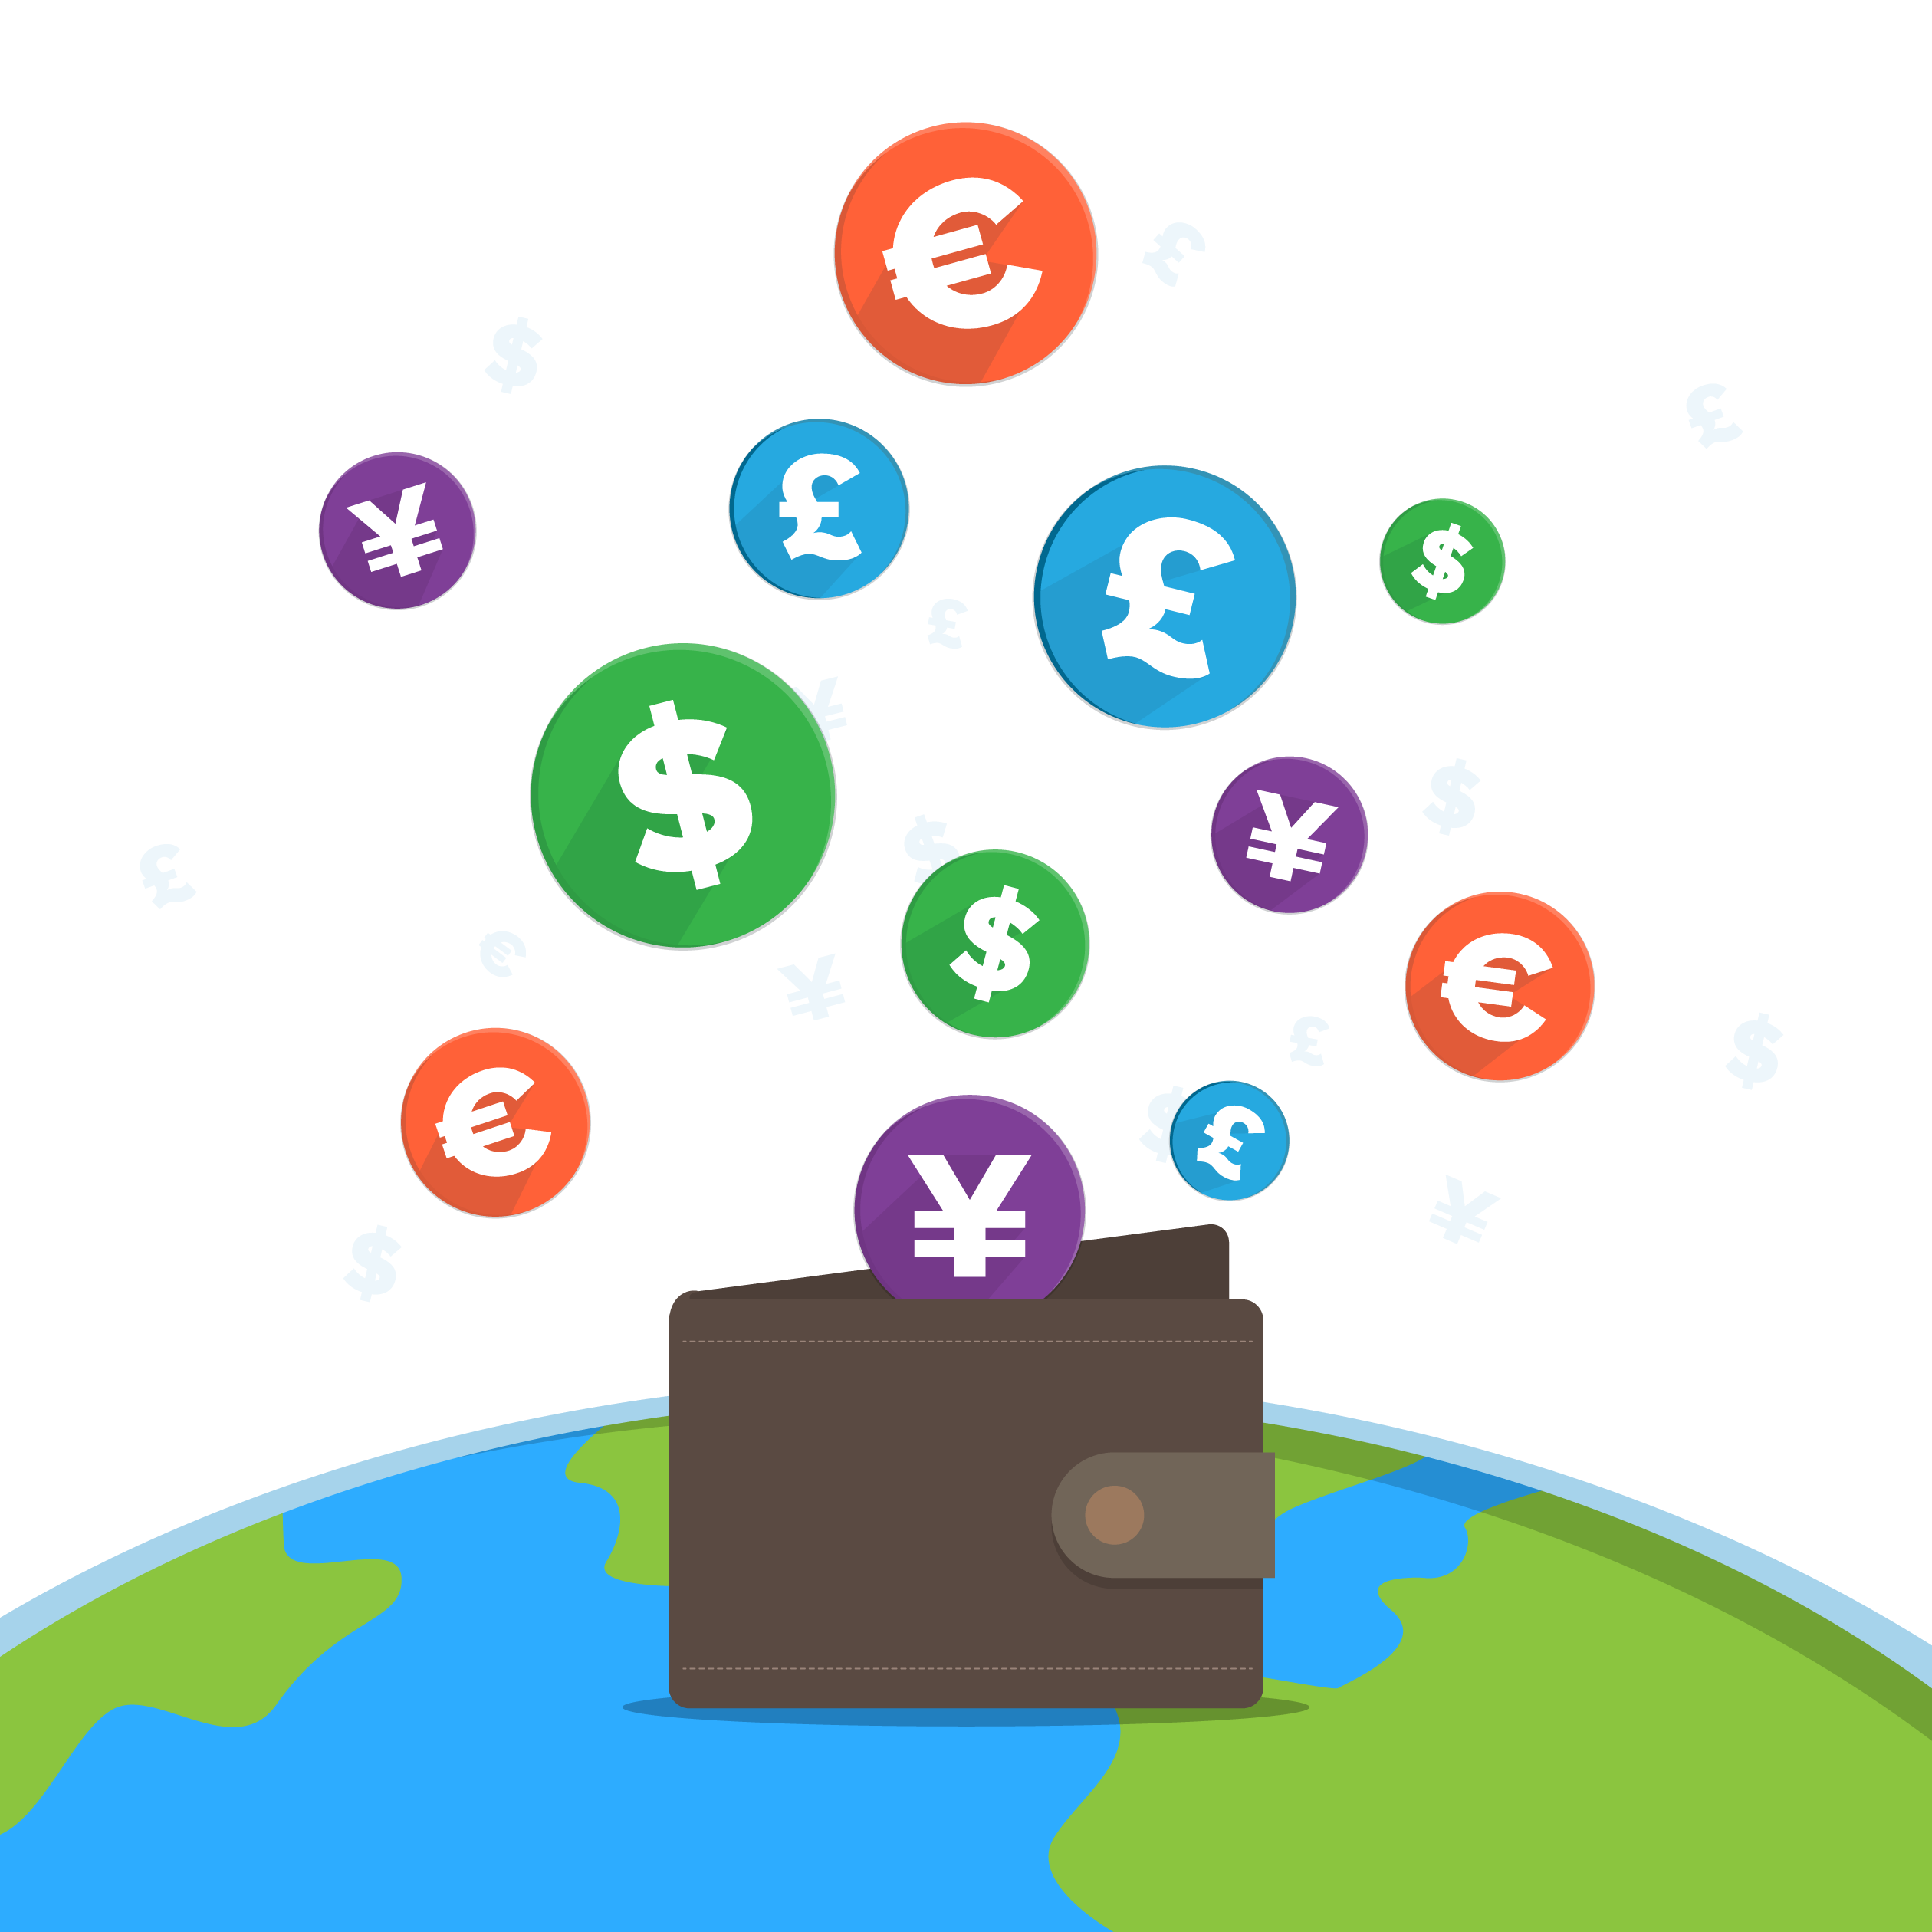 Money and personnel clipart business free png royalty free stock Payment Business E-commerce Money Exchange rate - Creative wallet ... png royalty free stock